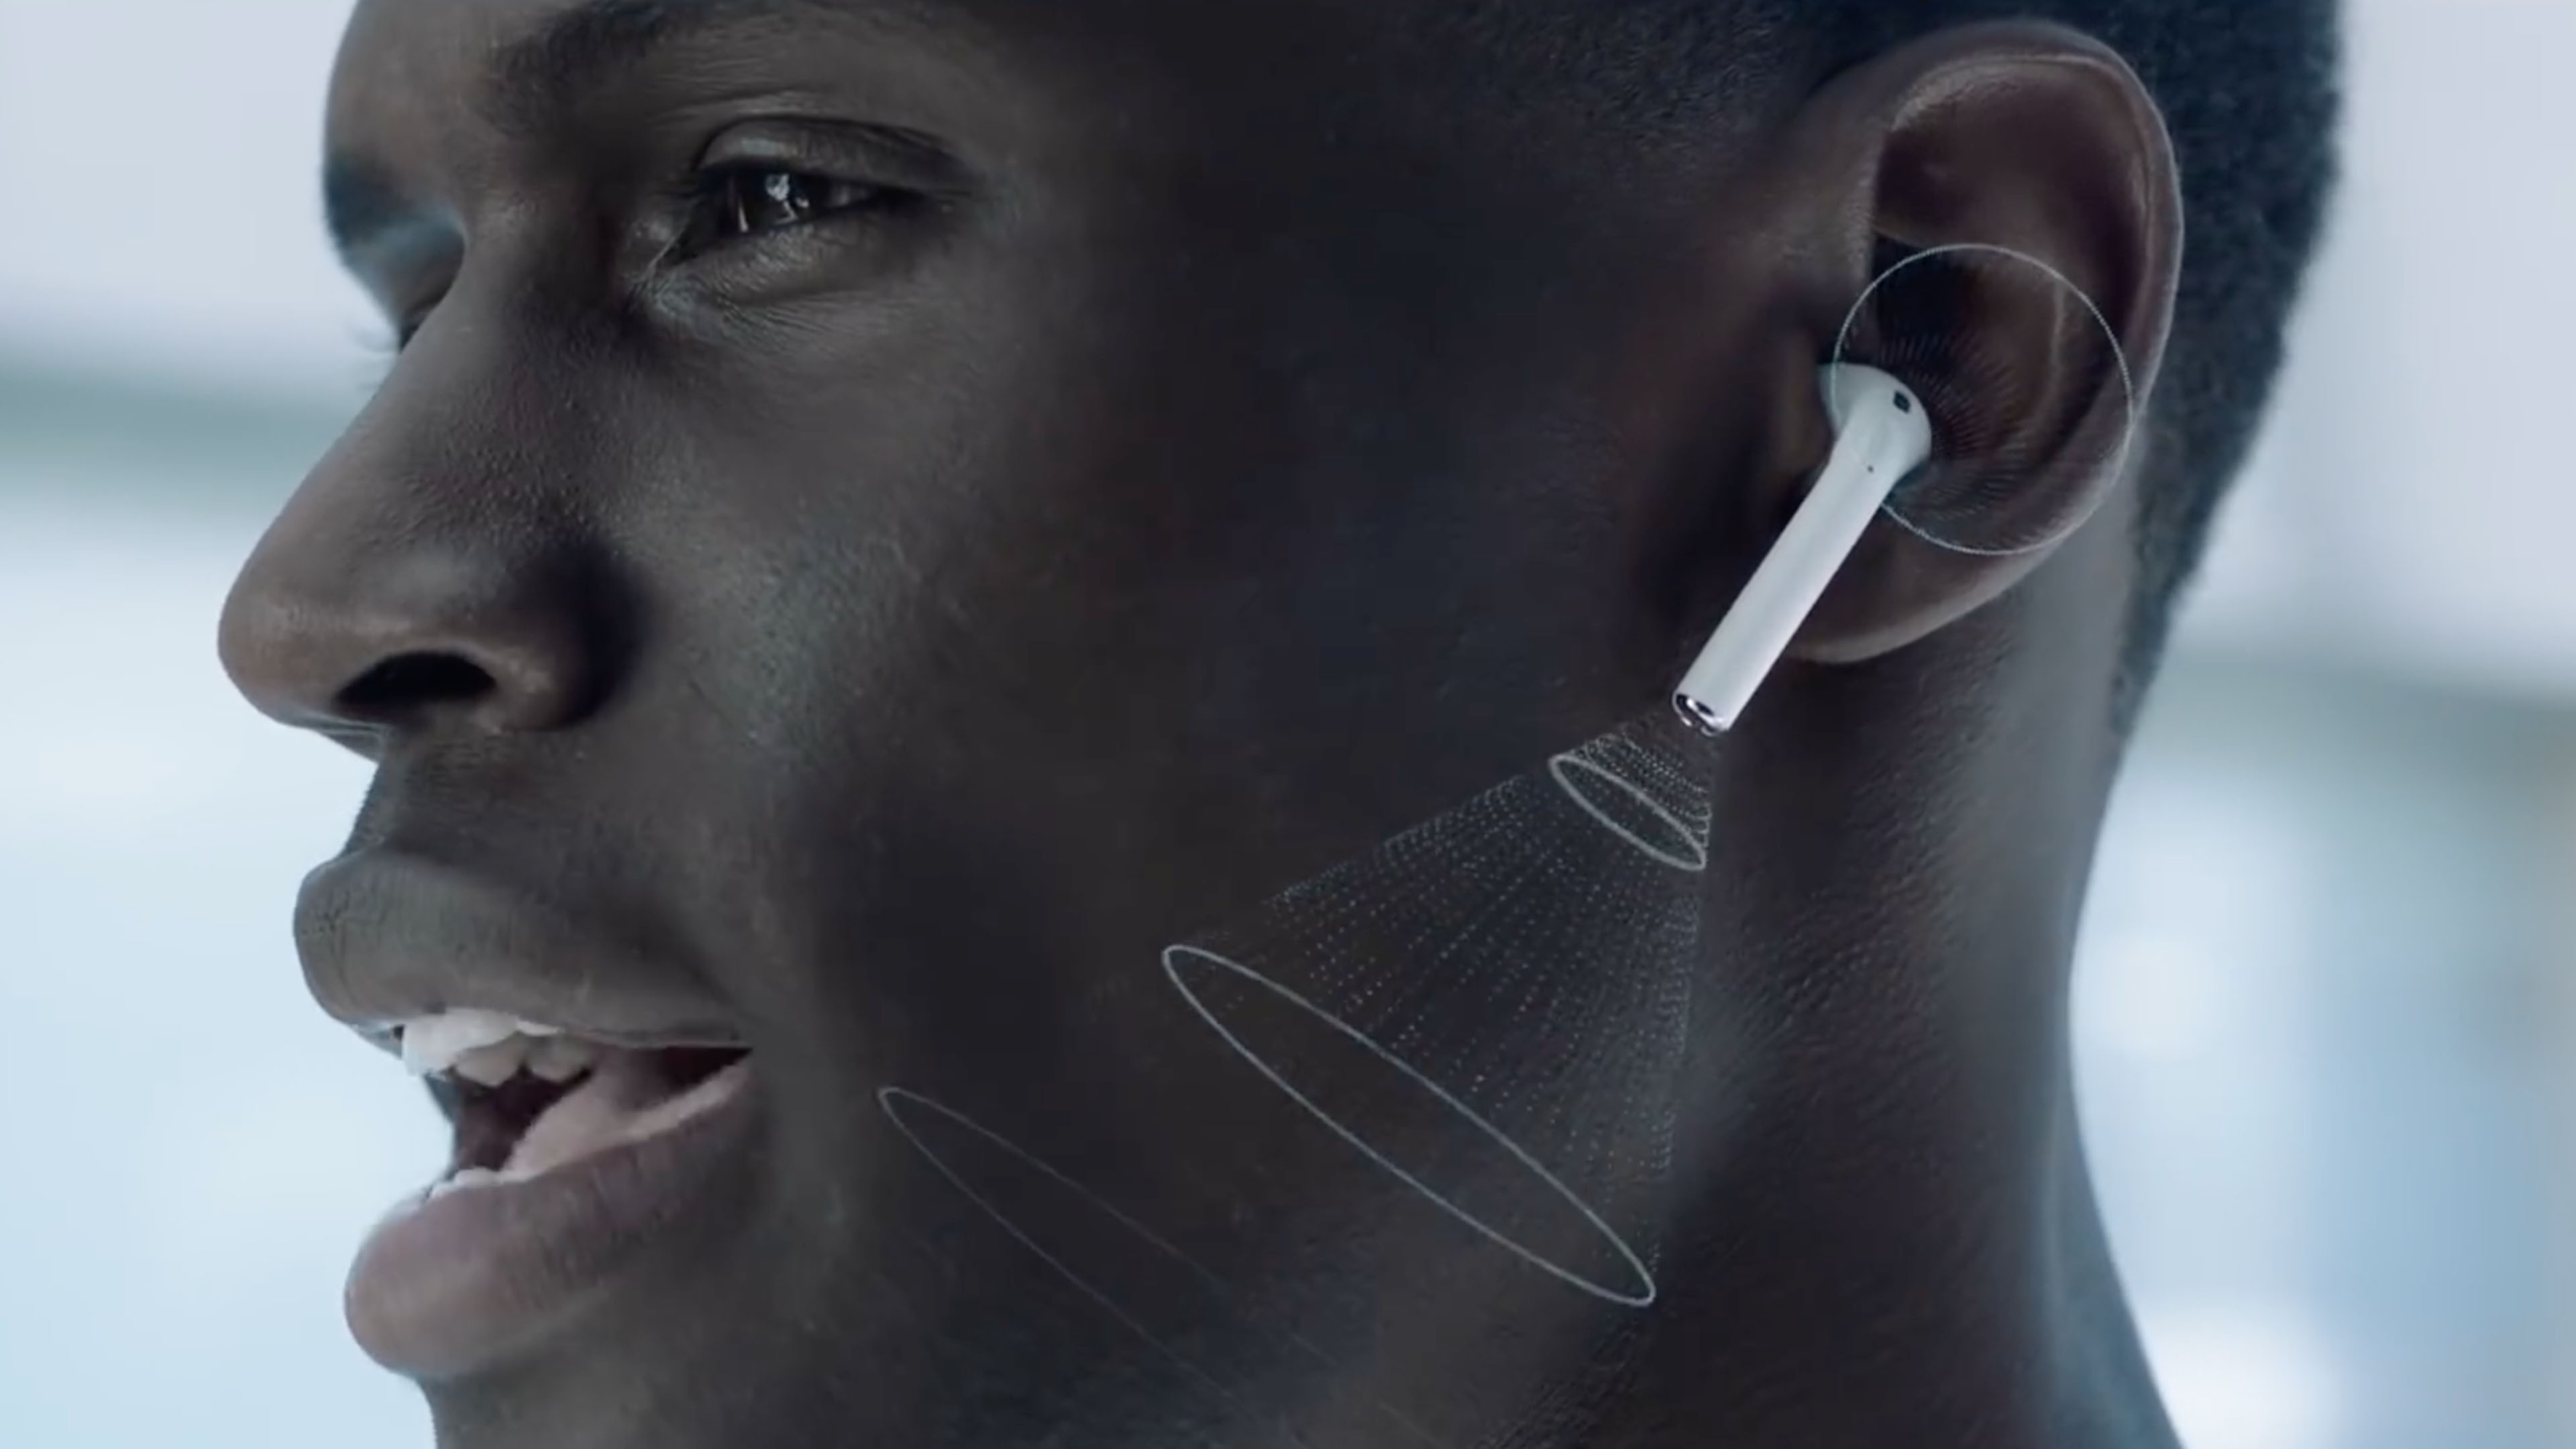 Rumor: AirPods 2 with specialized grip coating and AirPower launching this Spring